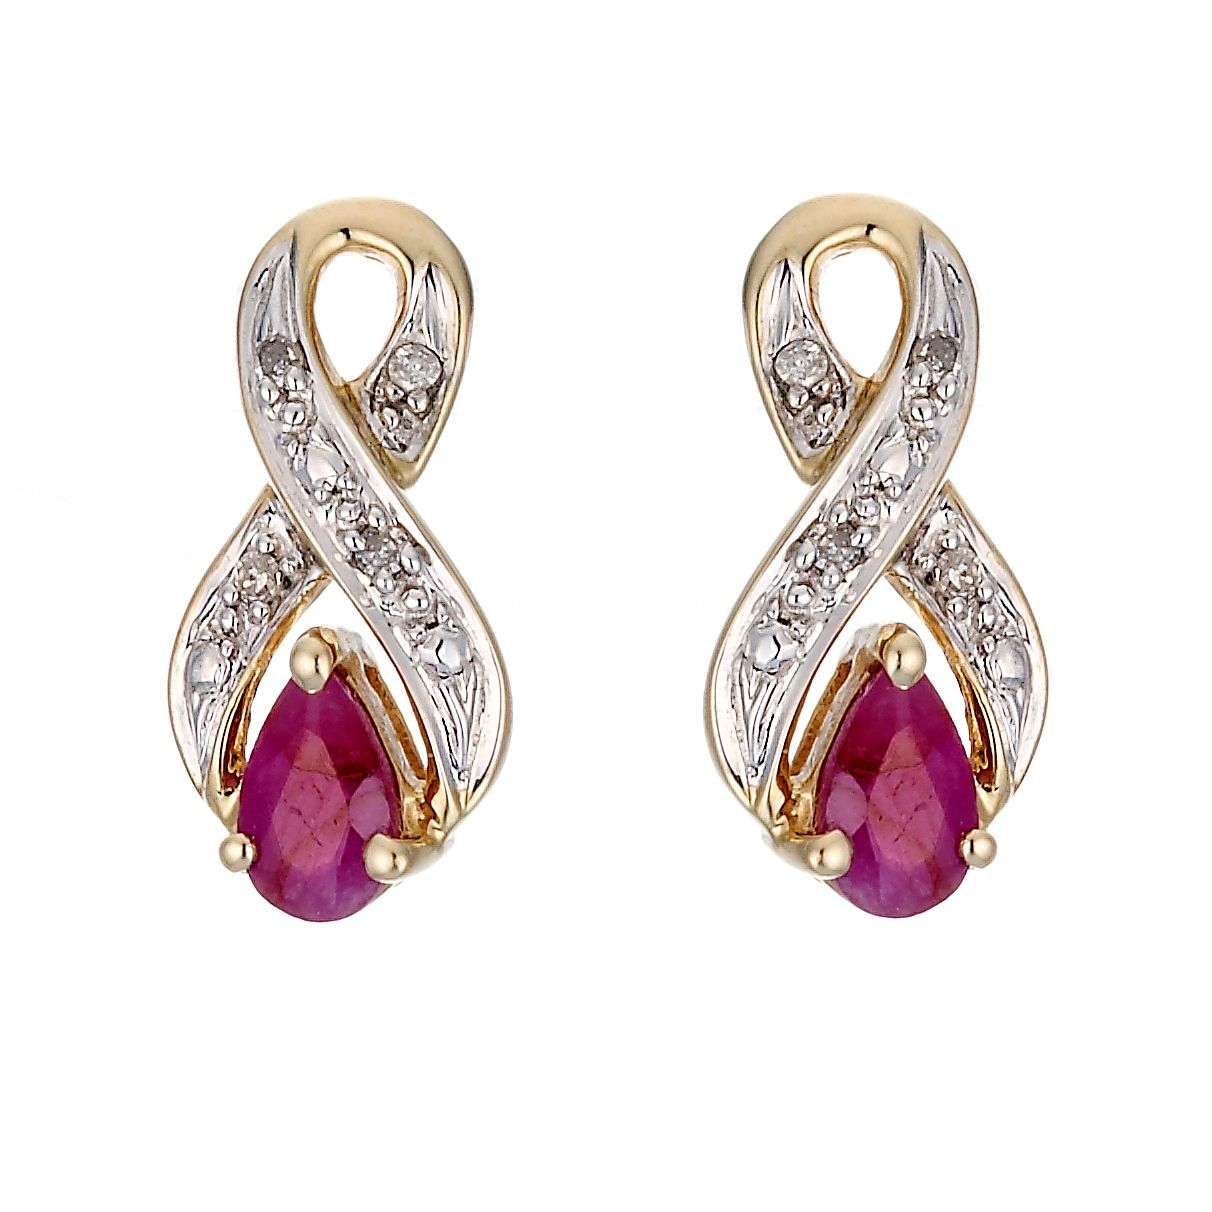 9ct Yellow Gold Rhodium Plated Diamond and Ruby Earrings - Product number 6853684